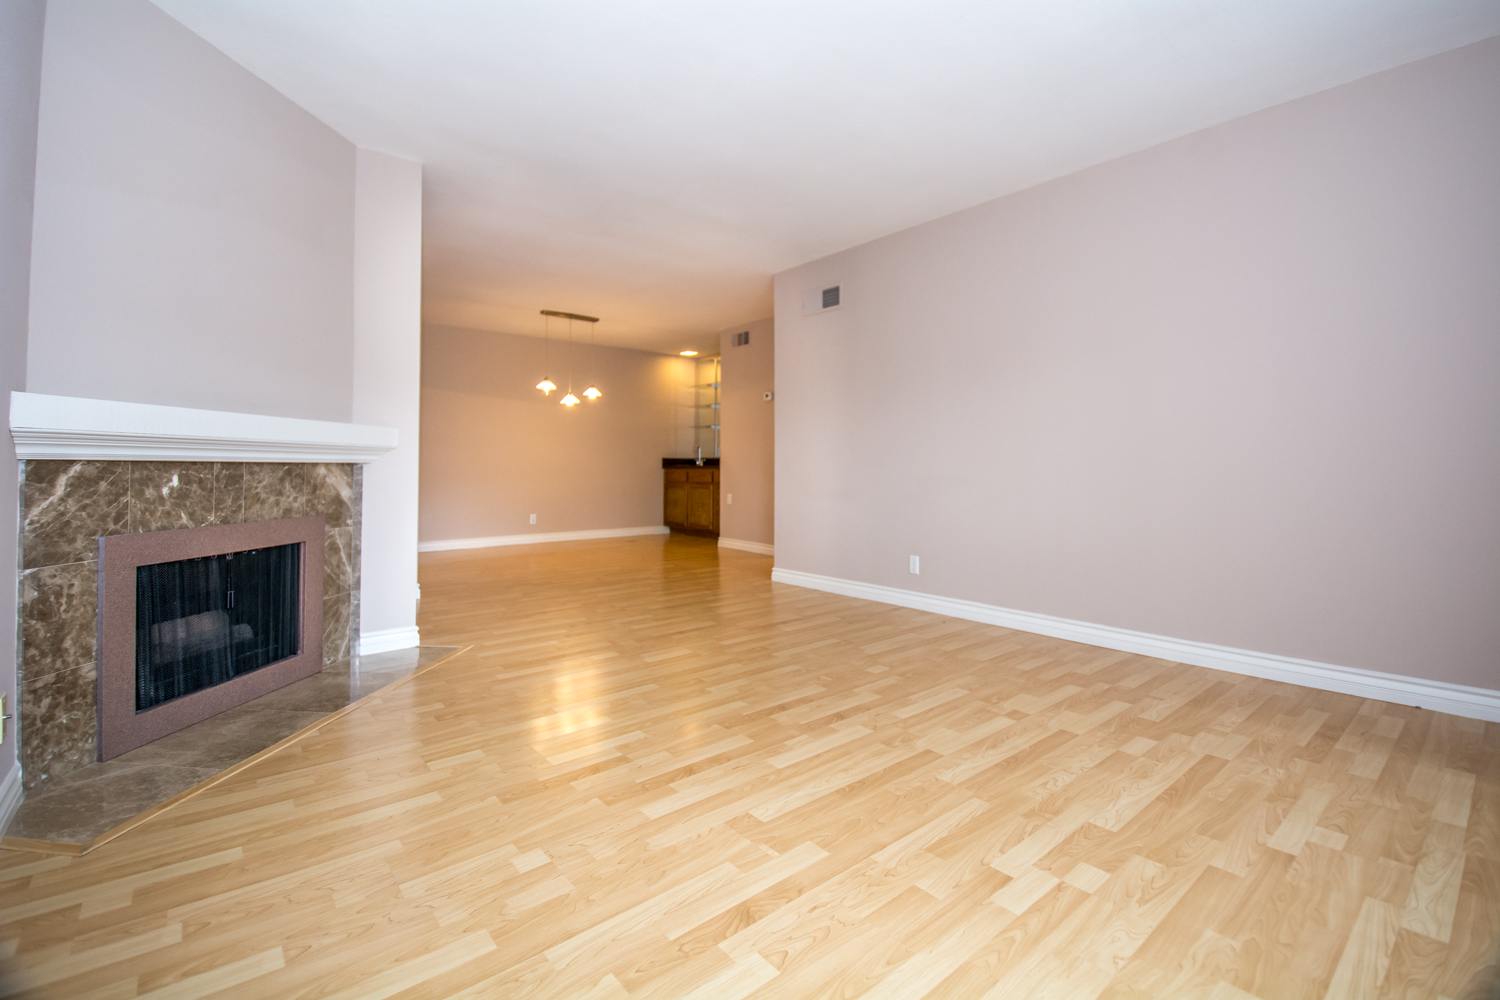 This Spacious Condo Has Storage Room For A Full Size Washer And Dryer And  Patio Area To Enjoy Beautiful Afternoons. The Community Offers Gated Access  And ...